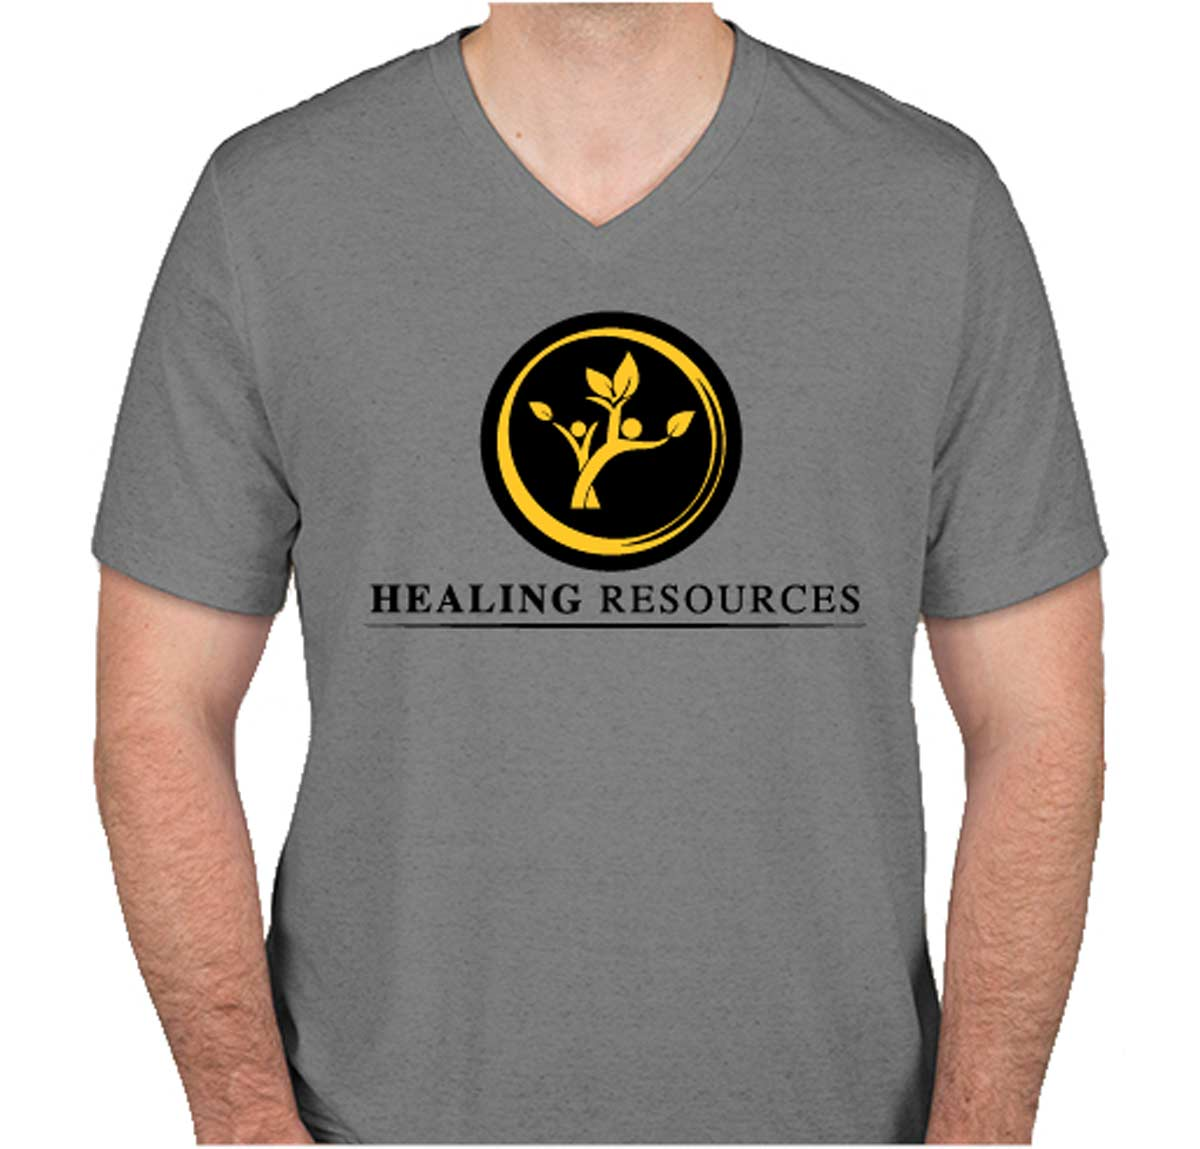 Healing Resources Men's V-Neck